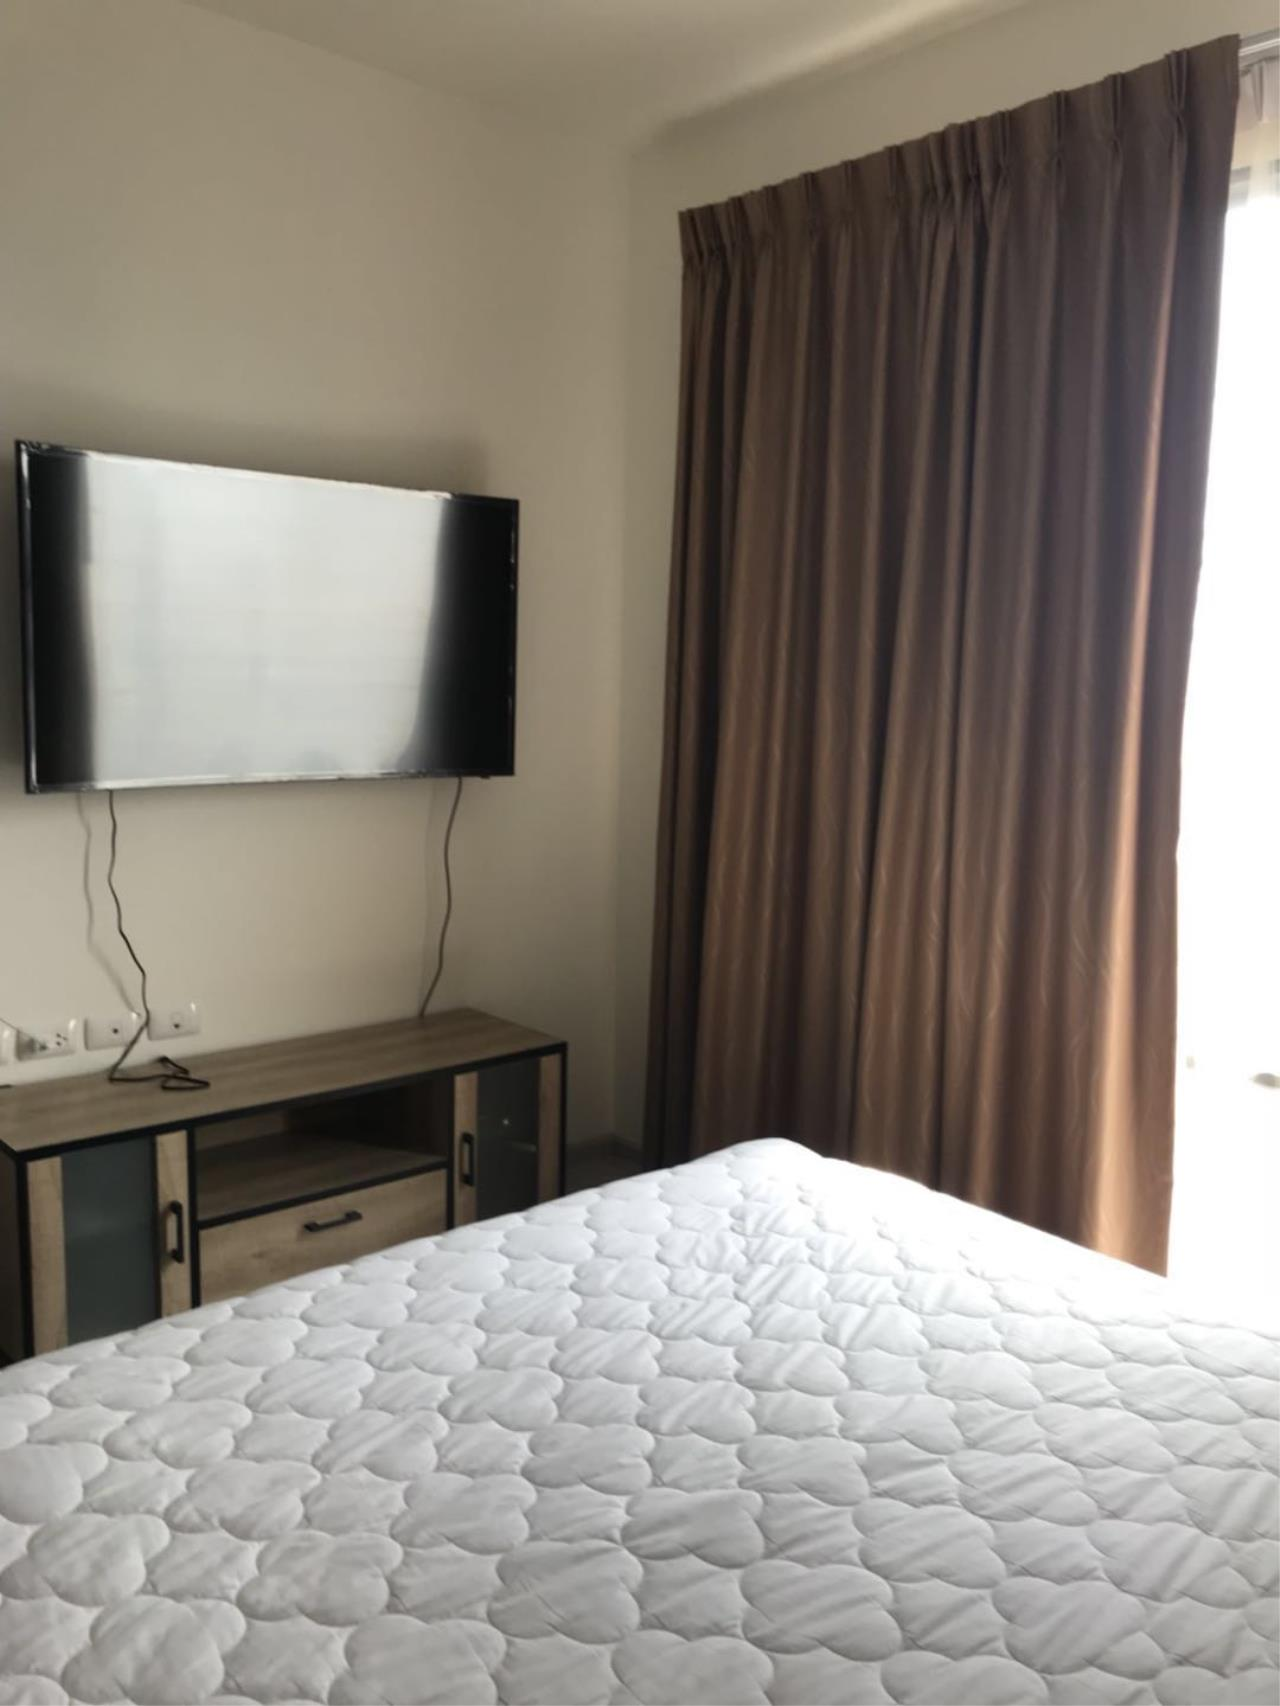 RE/MAX All Star Realty Agency's Rhythm Asoke beautiful rooms for sale/rent. 8